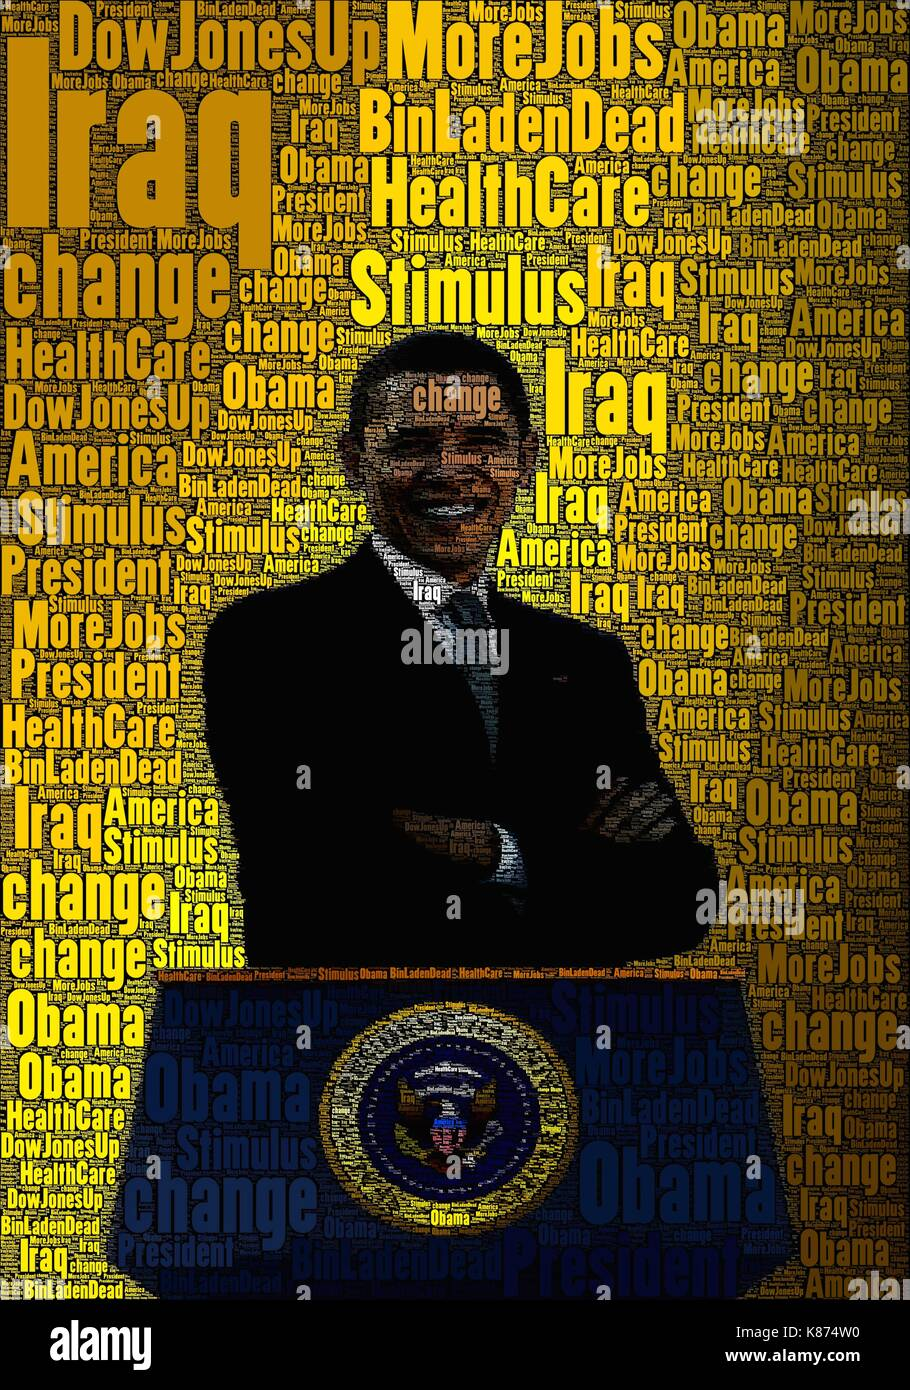 President Obama concept art, using only words to make it. - Stock Image